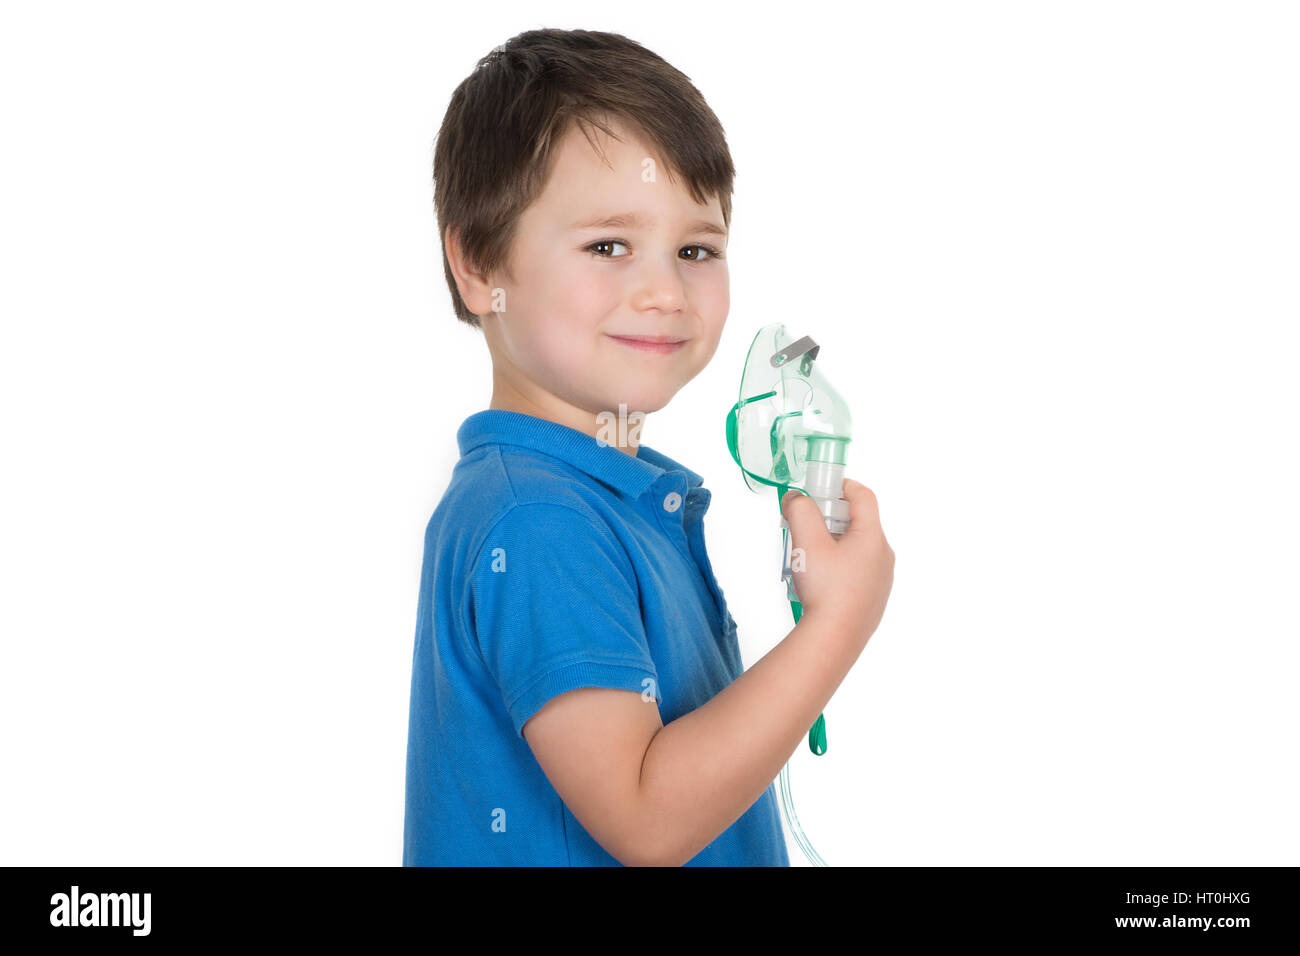 Little boy, asthma sufferer, holding in his hand face mask from nebulizer inhaler machine and smiling. Isolated - Stock Image